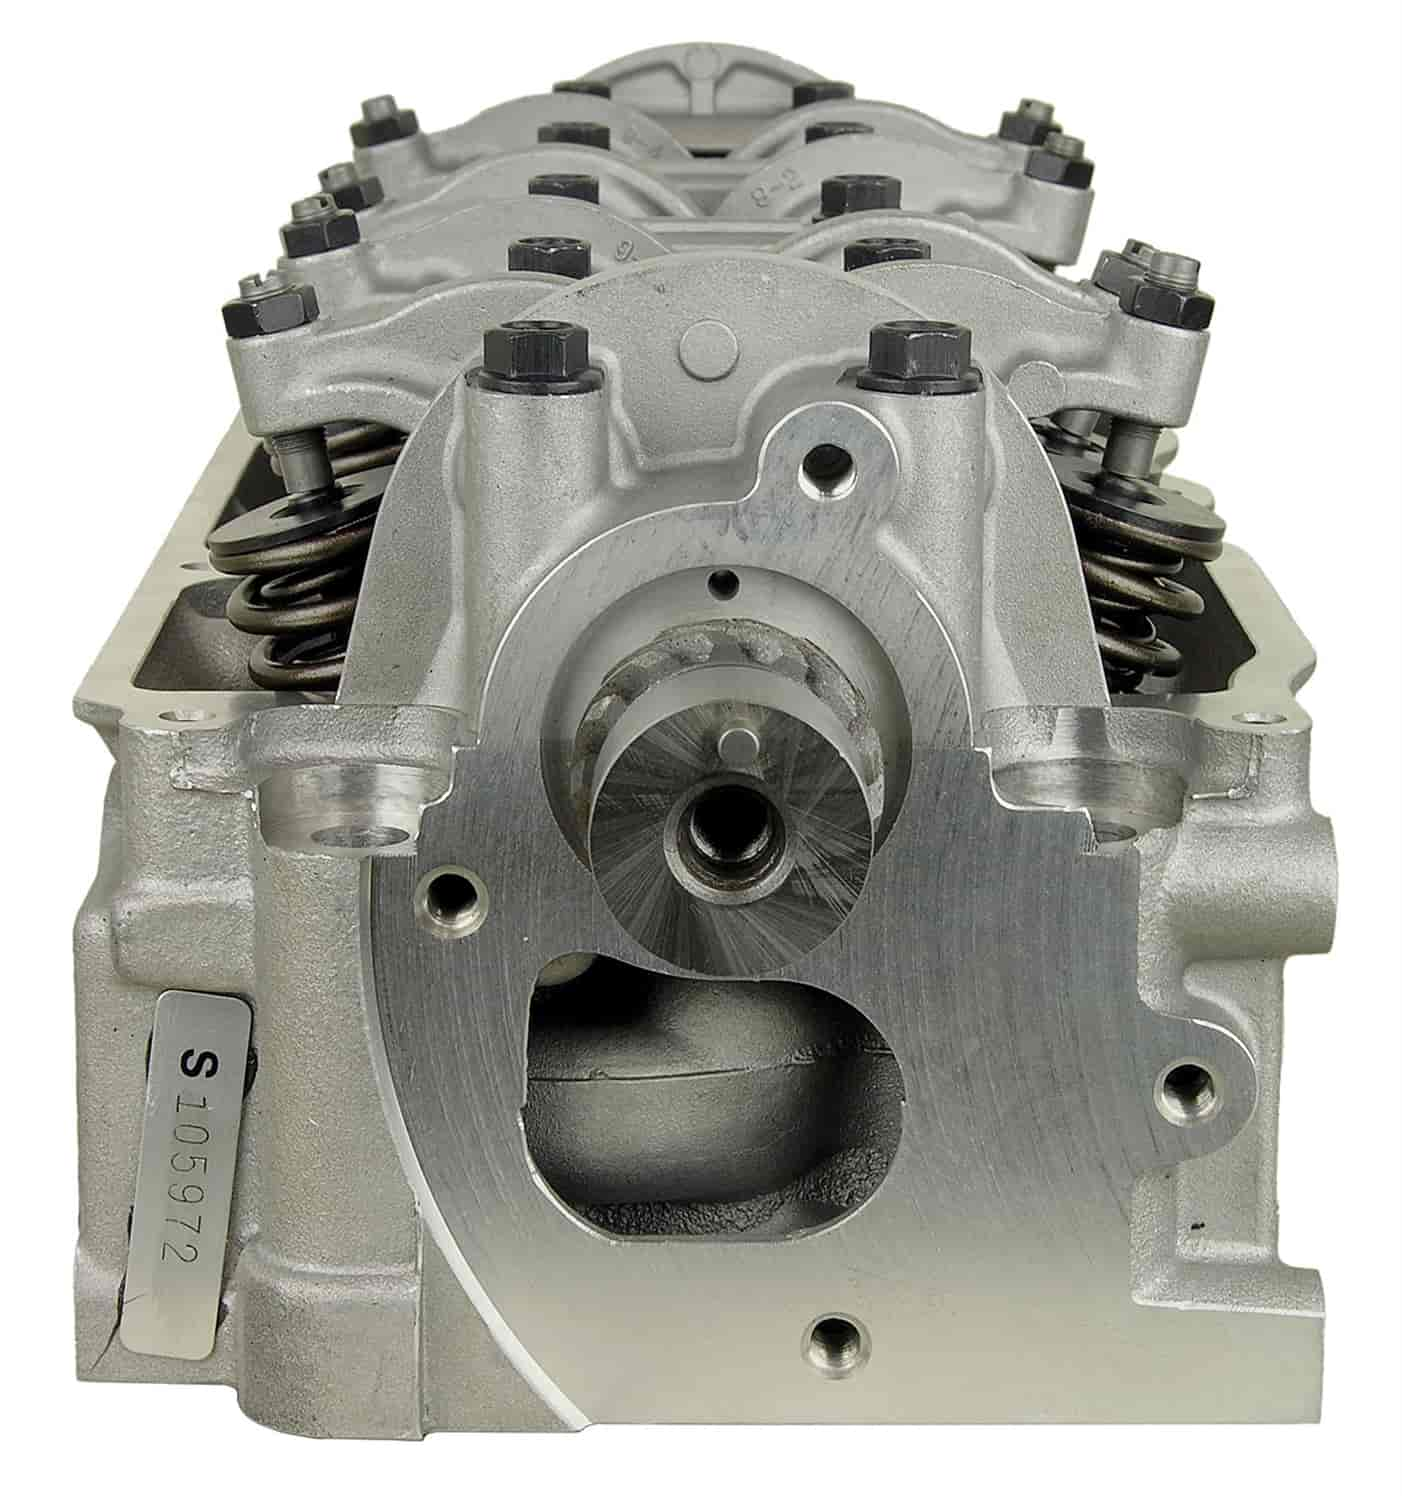 For Mazda B2000 1984 1987 Replace 2635 Remanufactured: ATK Engines 2635: Remanufactured Cylinder Head For 1984